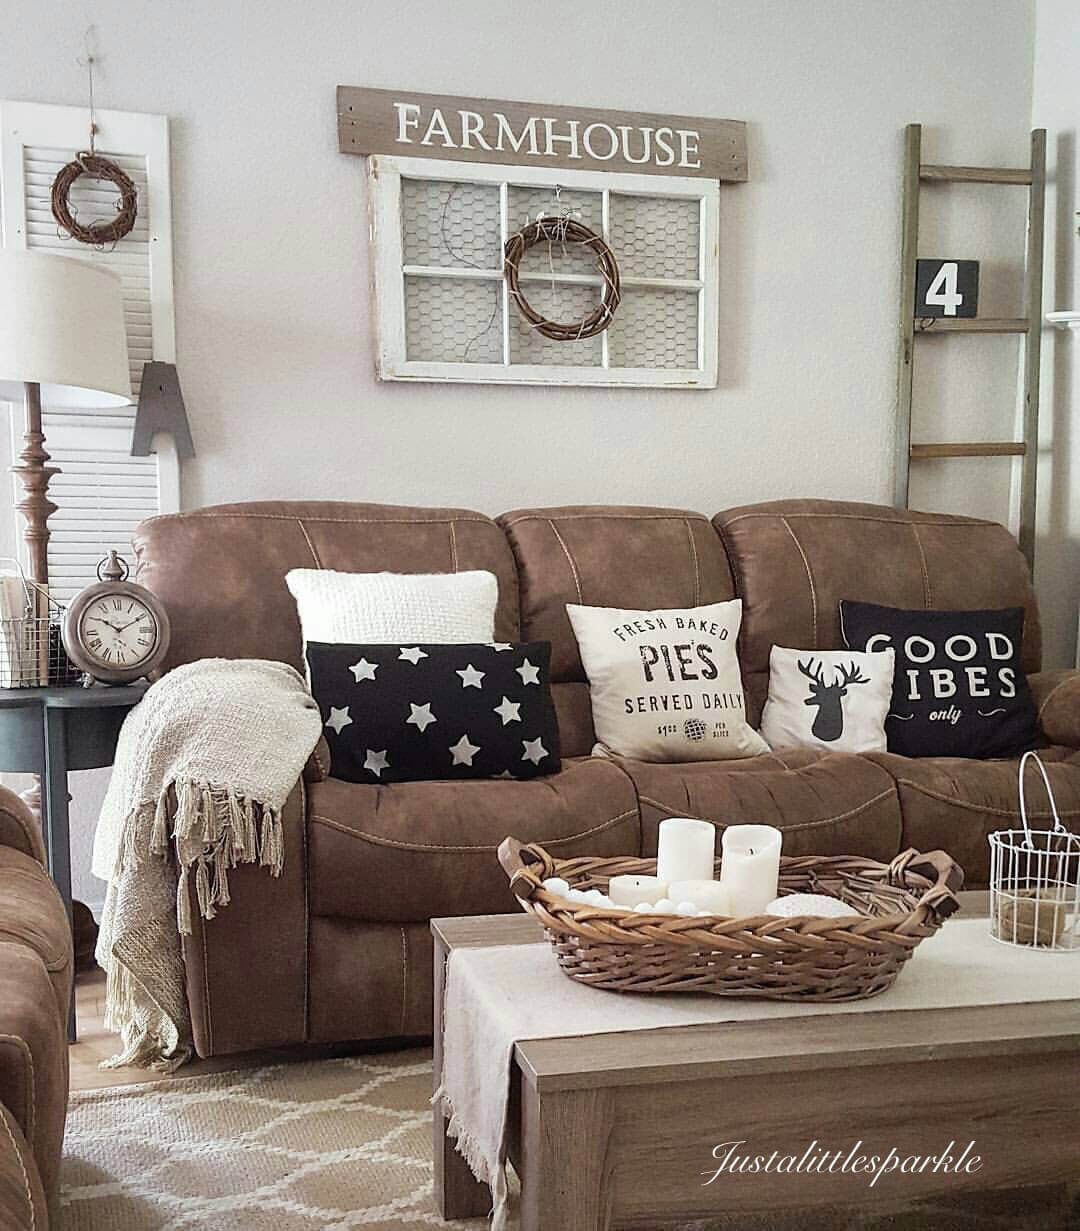 Farmhouse Living Room Ideas. 35 Rustic Farmhouse Living Room Design and Decor Ideas for Your Home